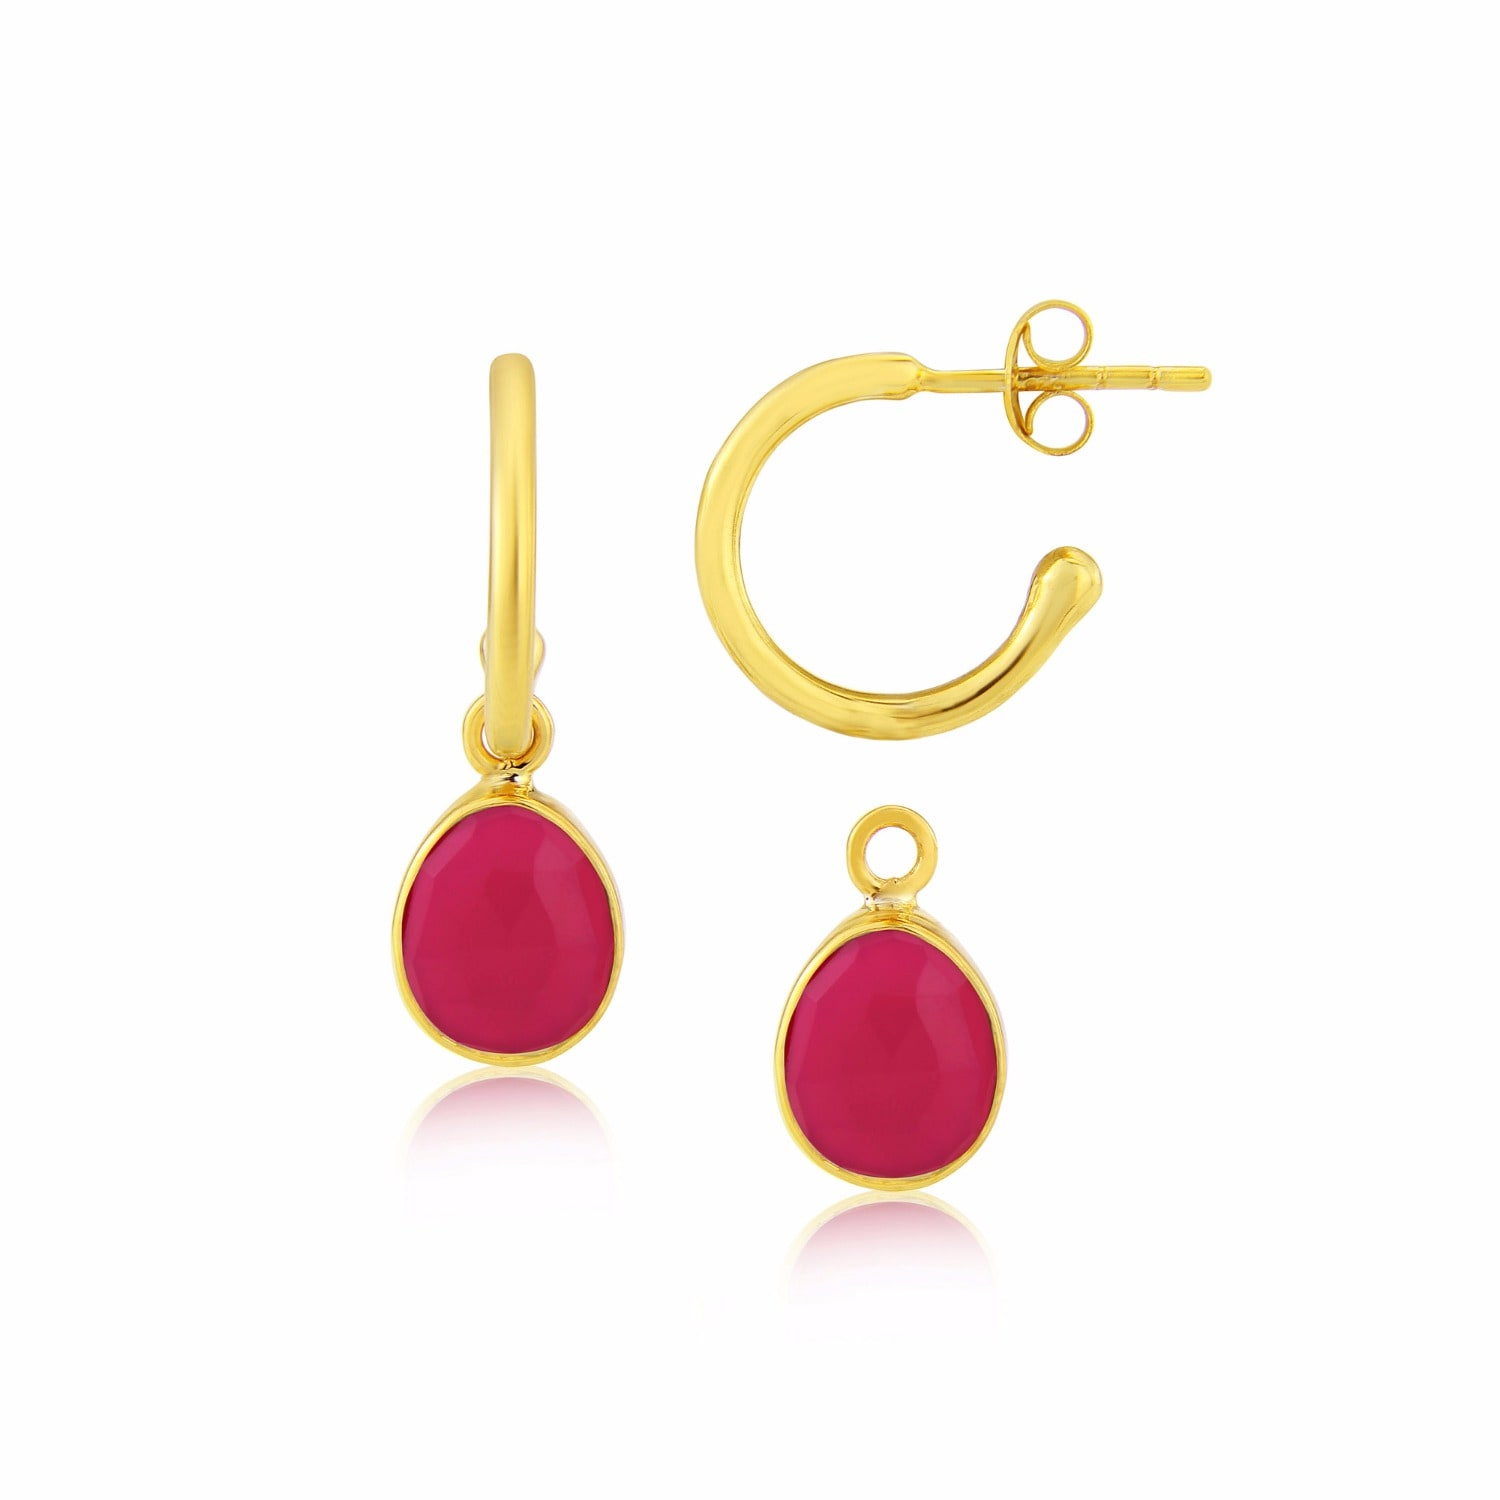 Auree Jewellery - Manhattan Gold & Fuchsia Pink Chalcedony Interchangeable Gemstone Earrings